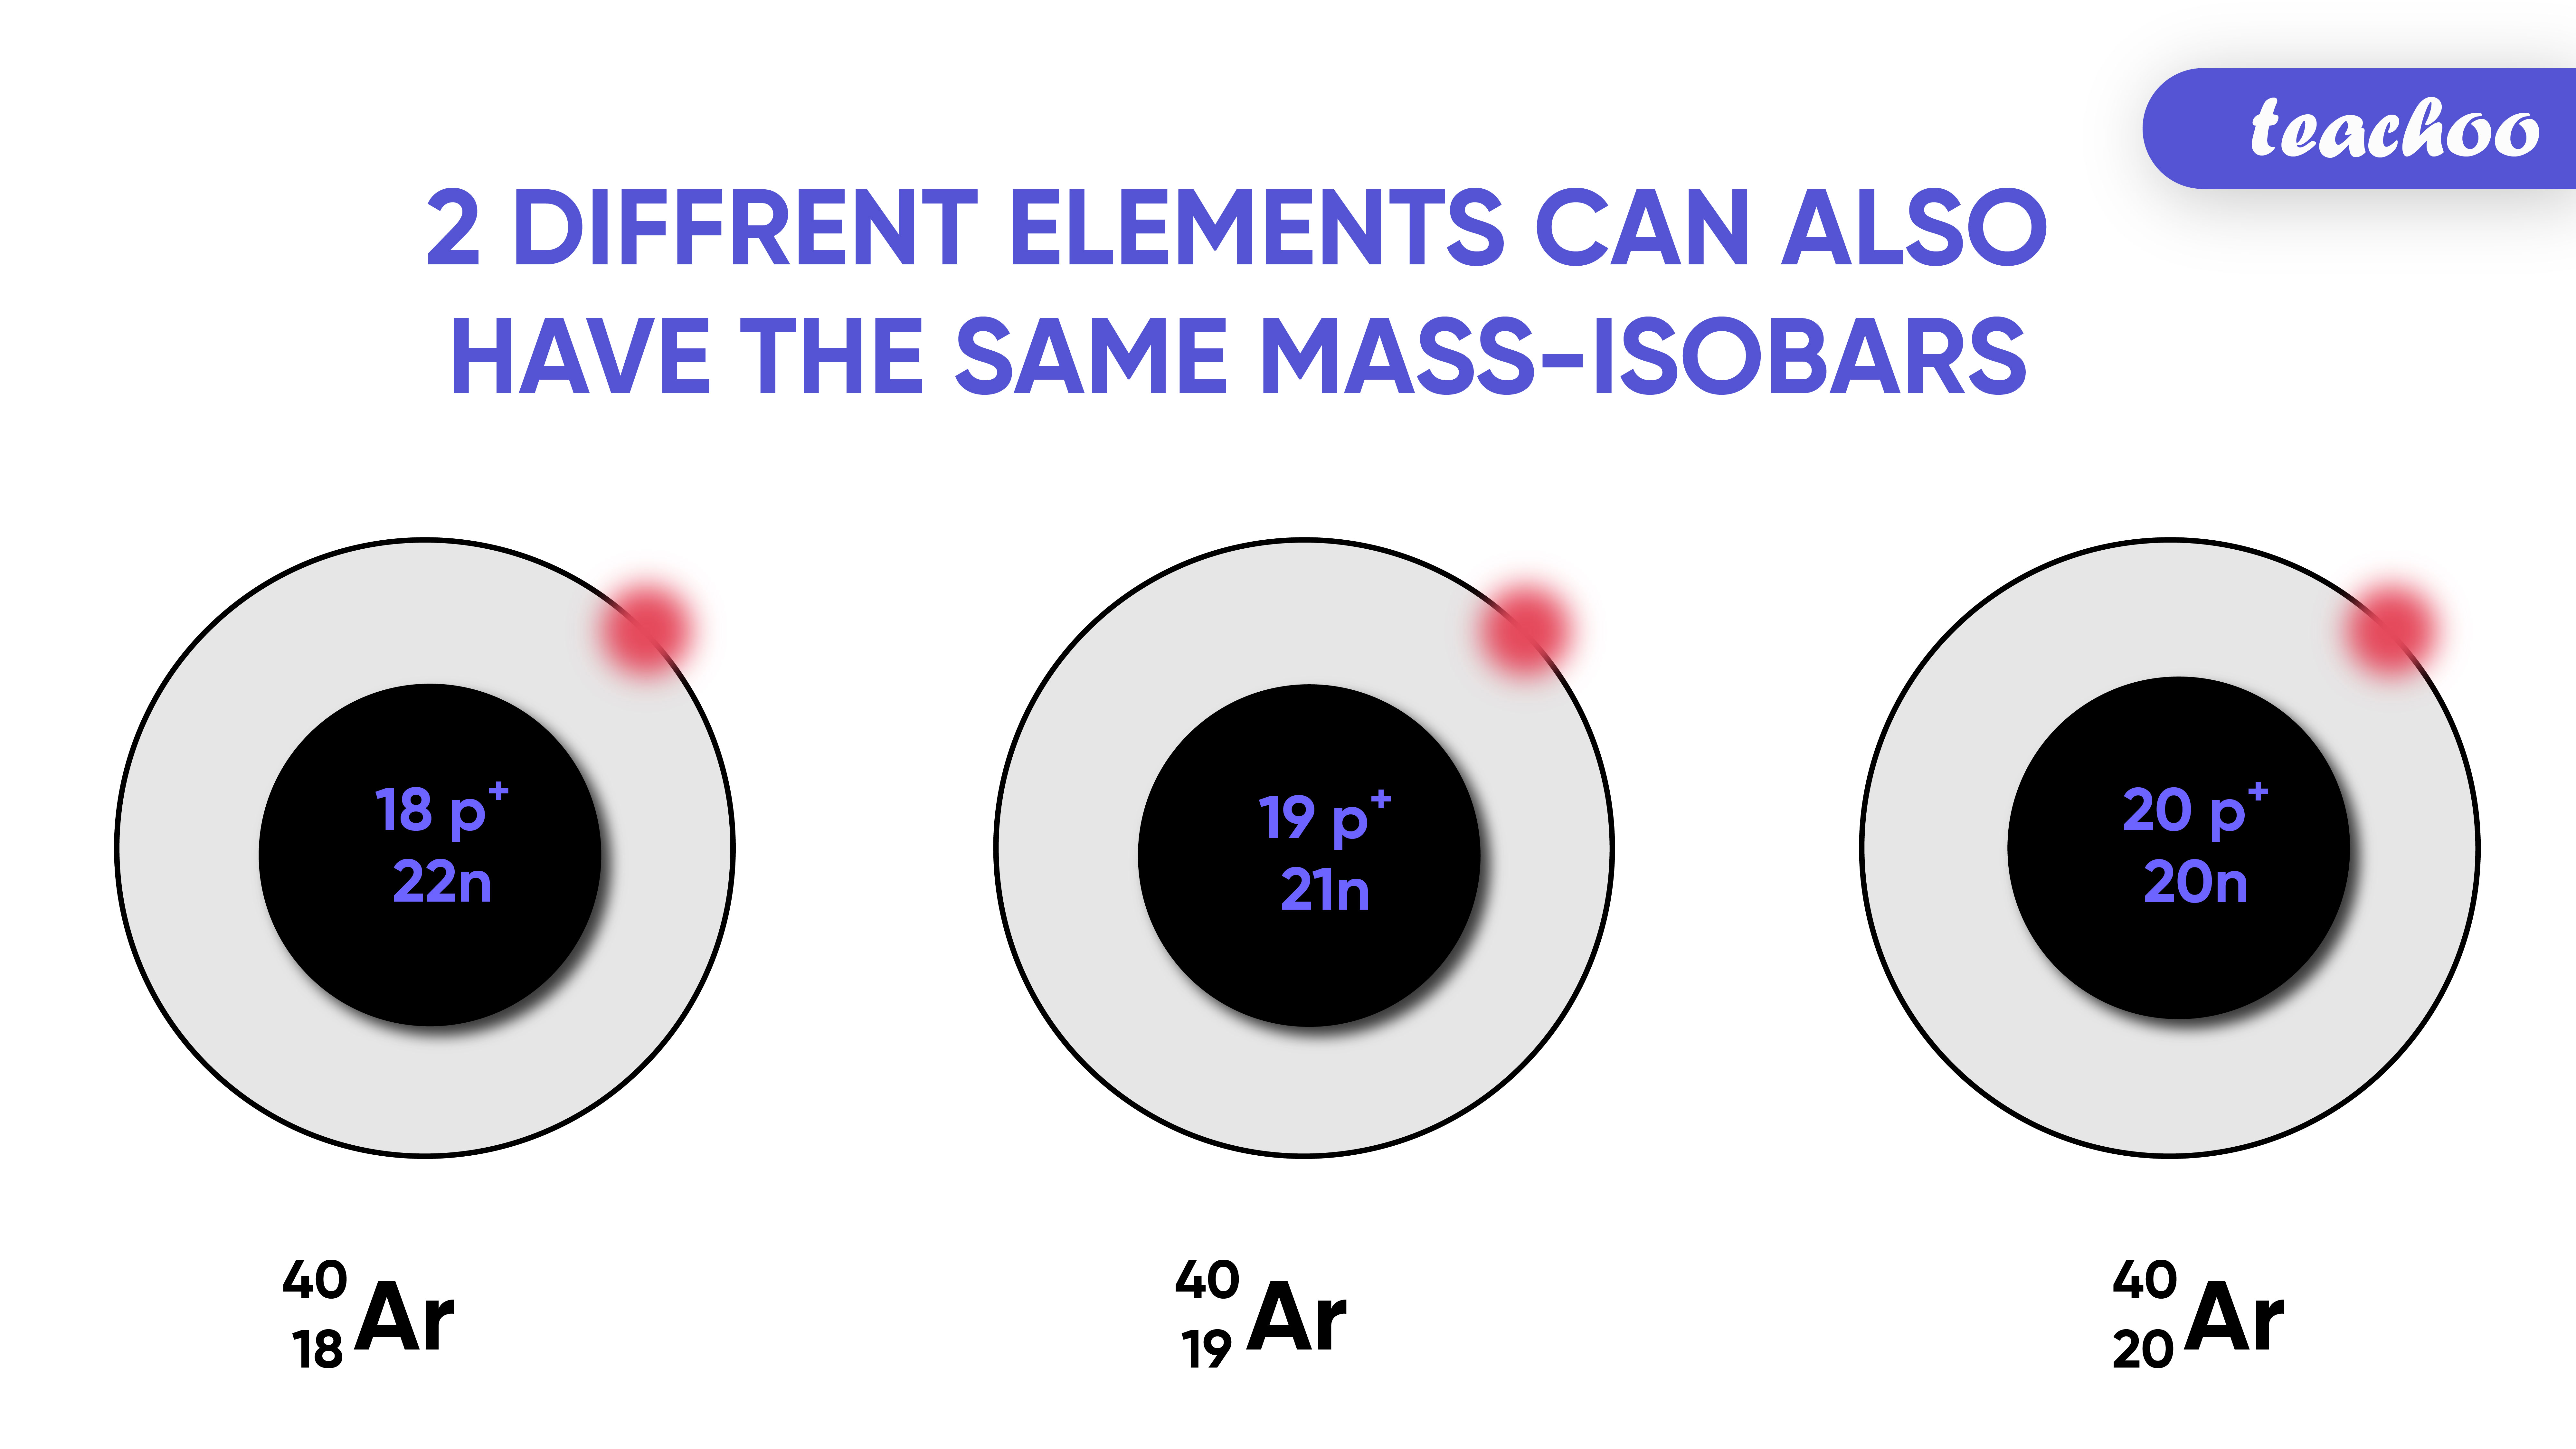 2 diffrent elements can also have the same mass-ISOBARS-Teachoo-01.jpg